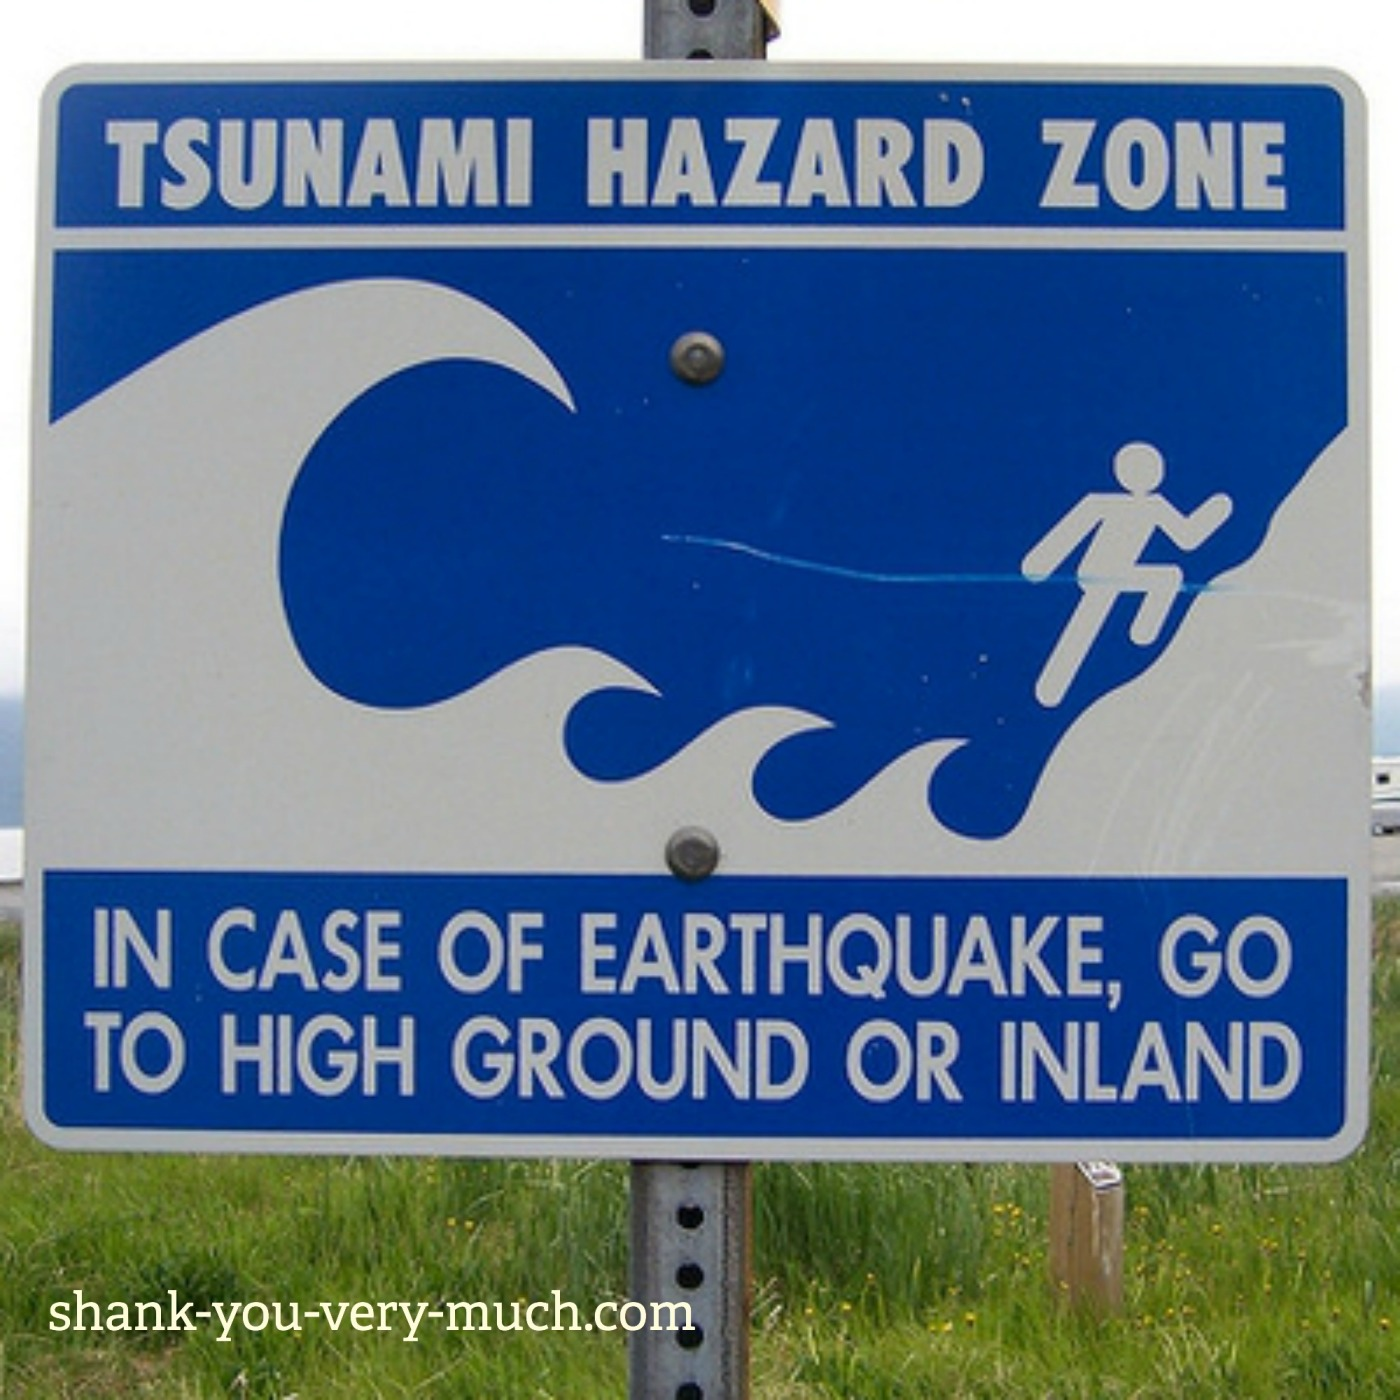 A tsunami hazard zone street sign